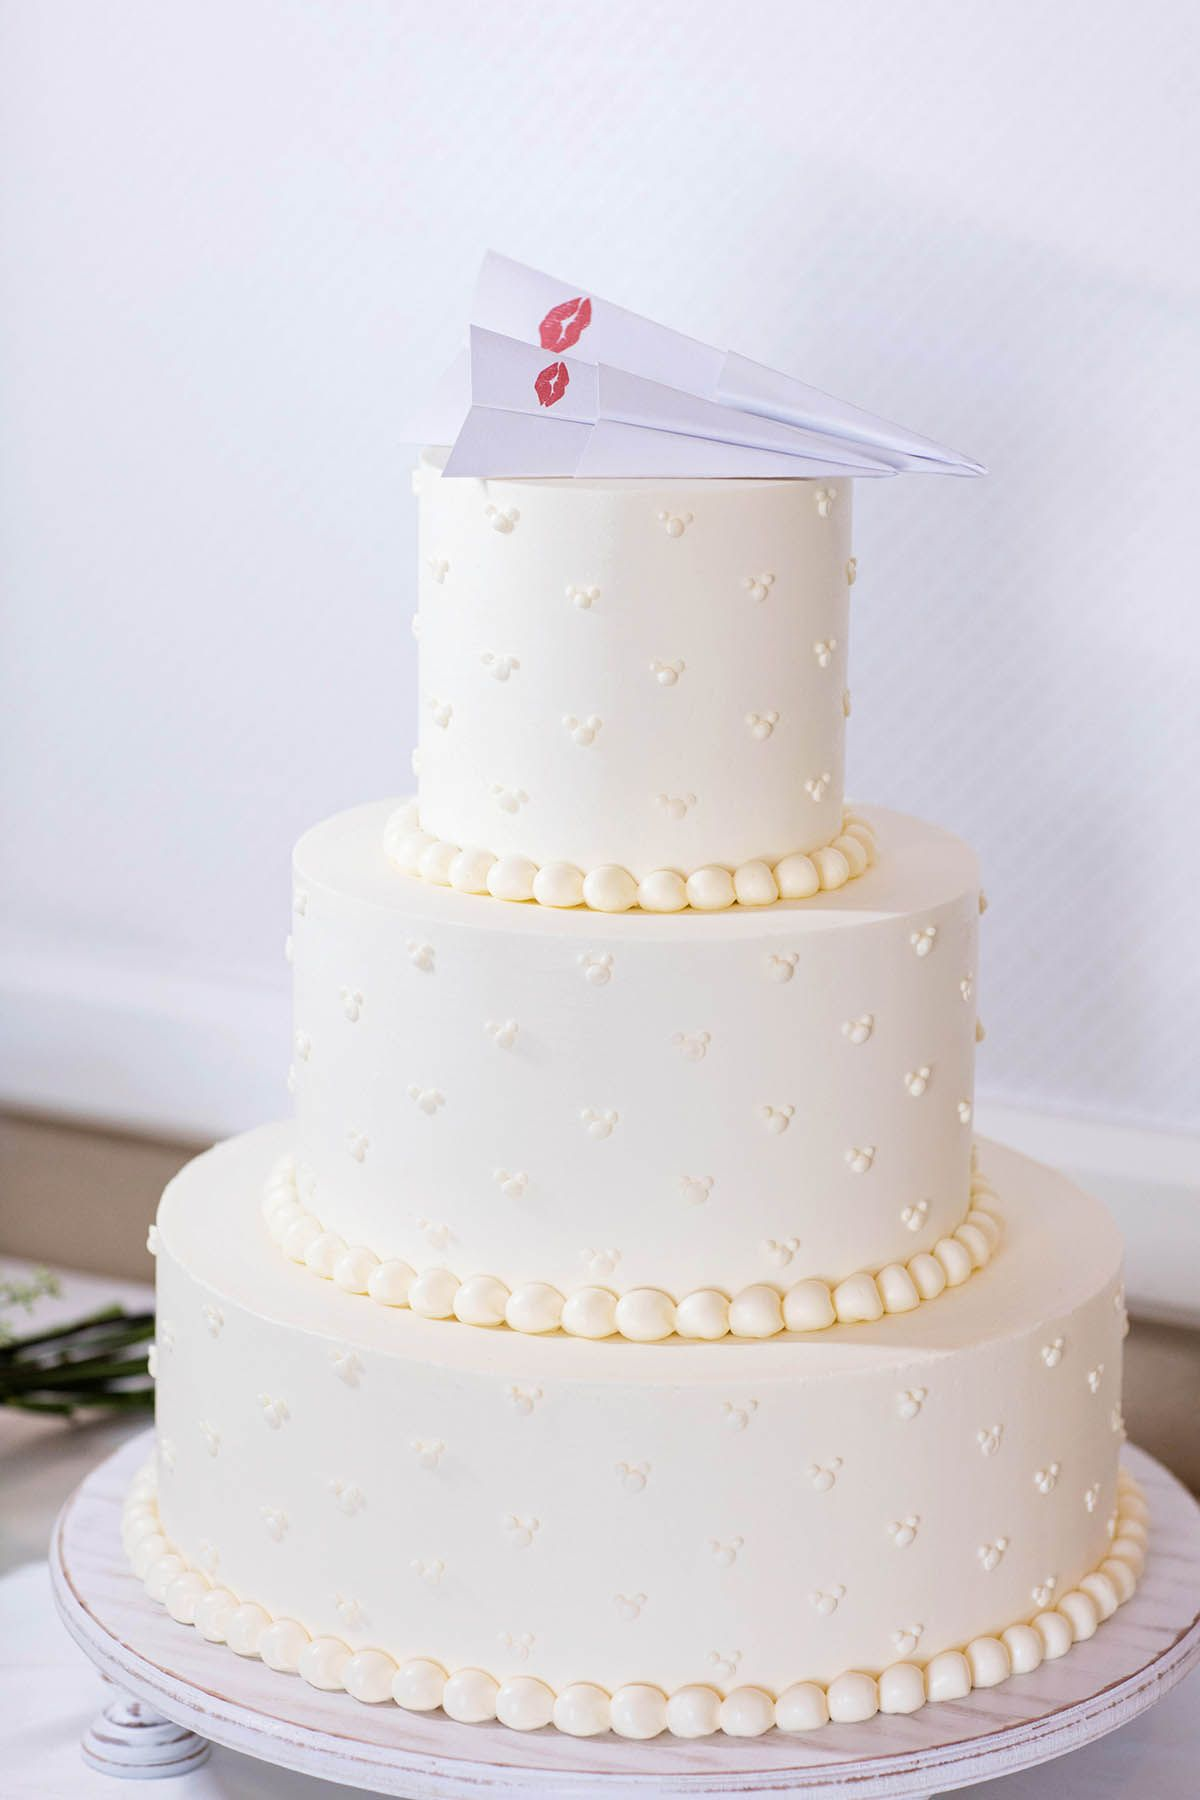 A simple white cake featuring a Paperman themed paper airplane ...